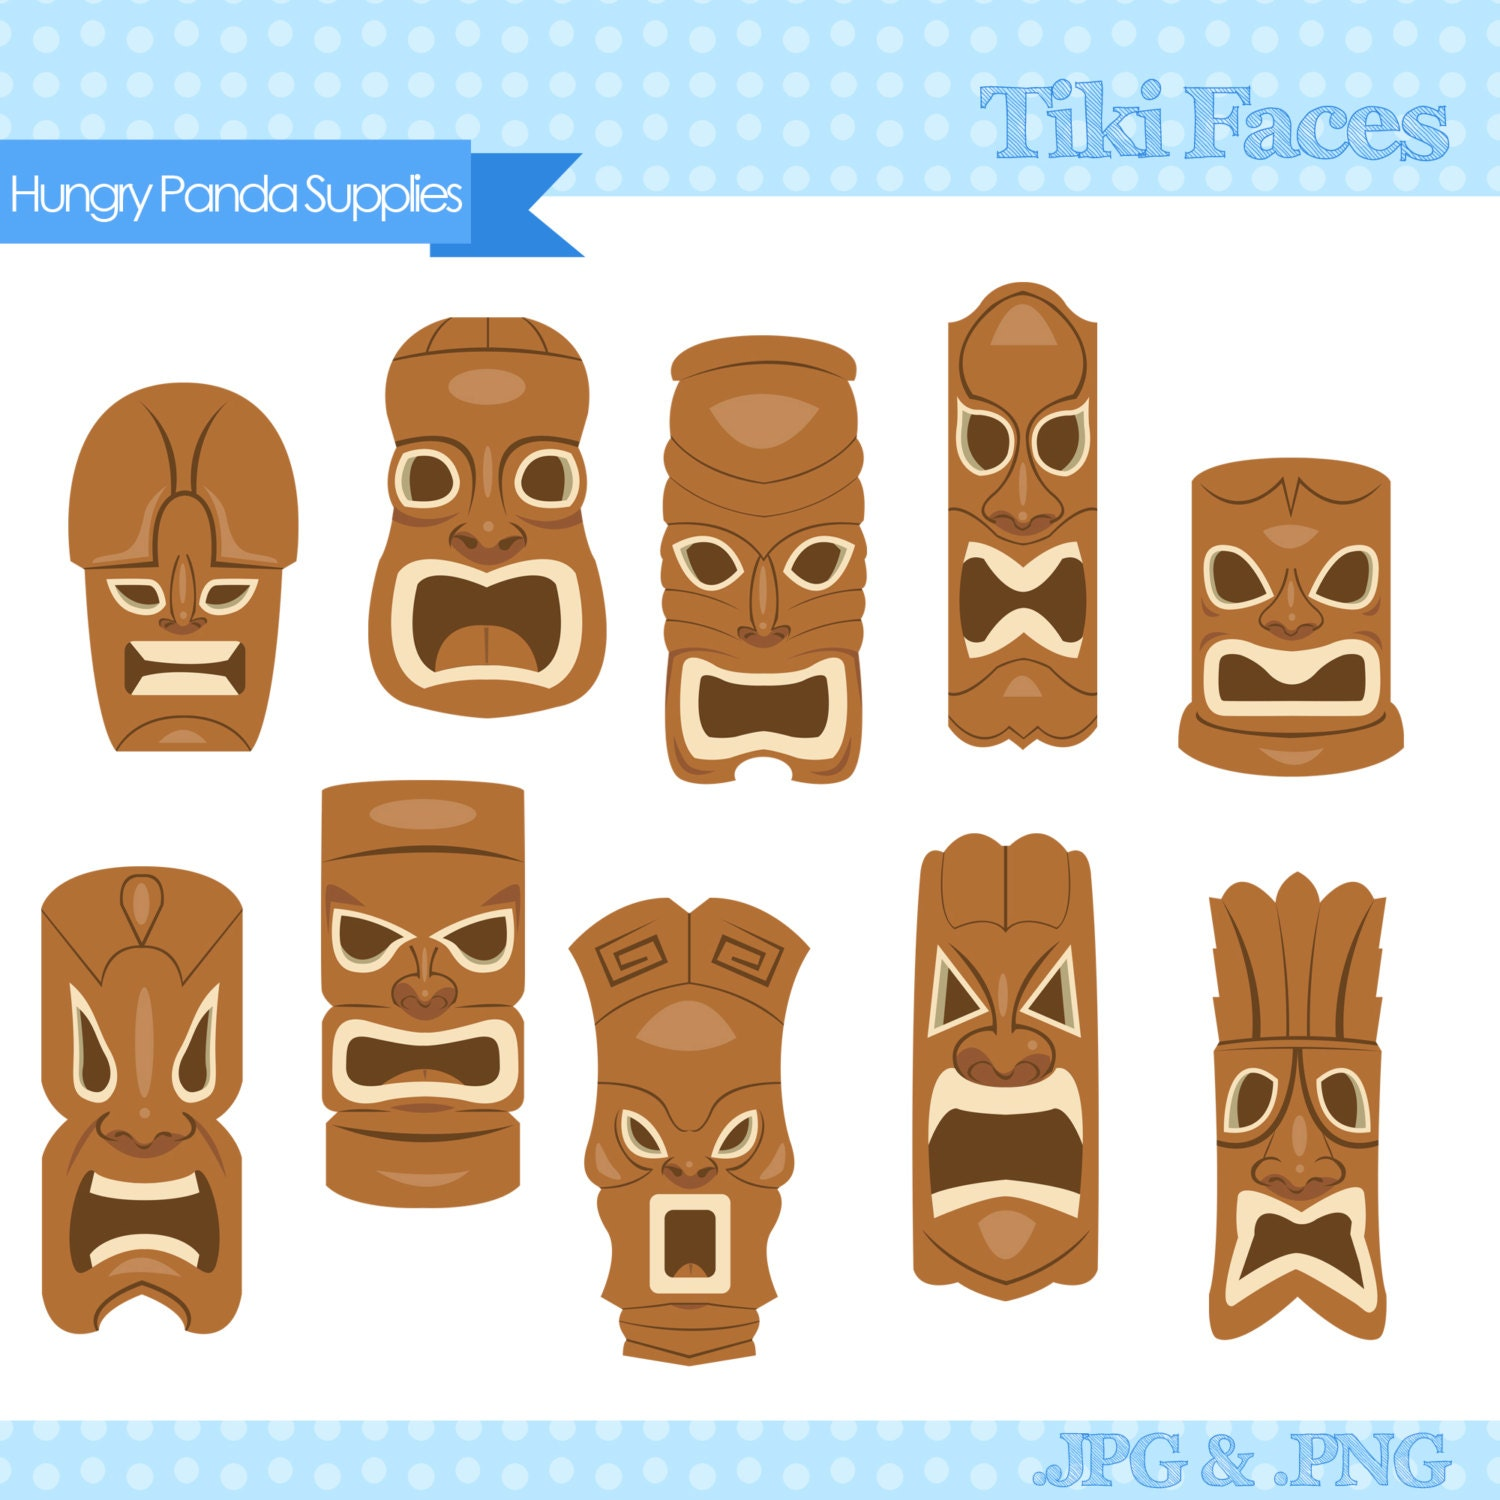 Gallery For gt Tiki Man Face